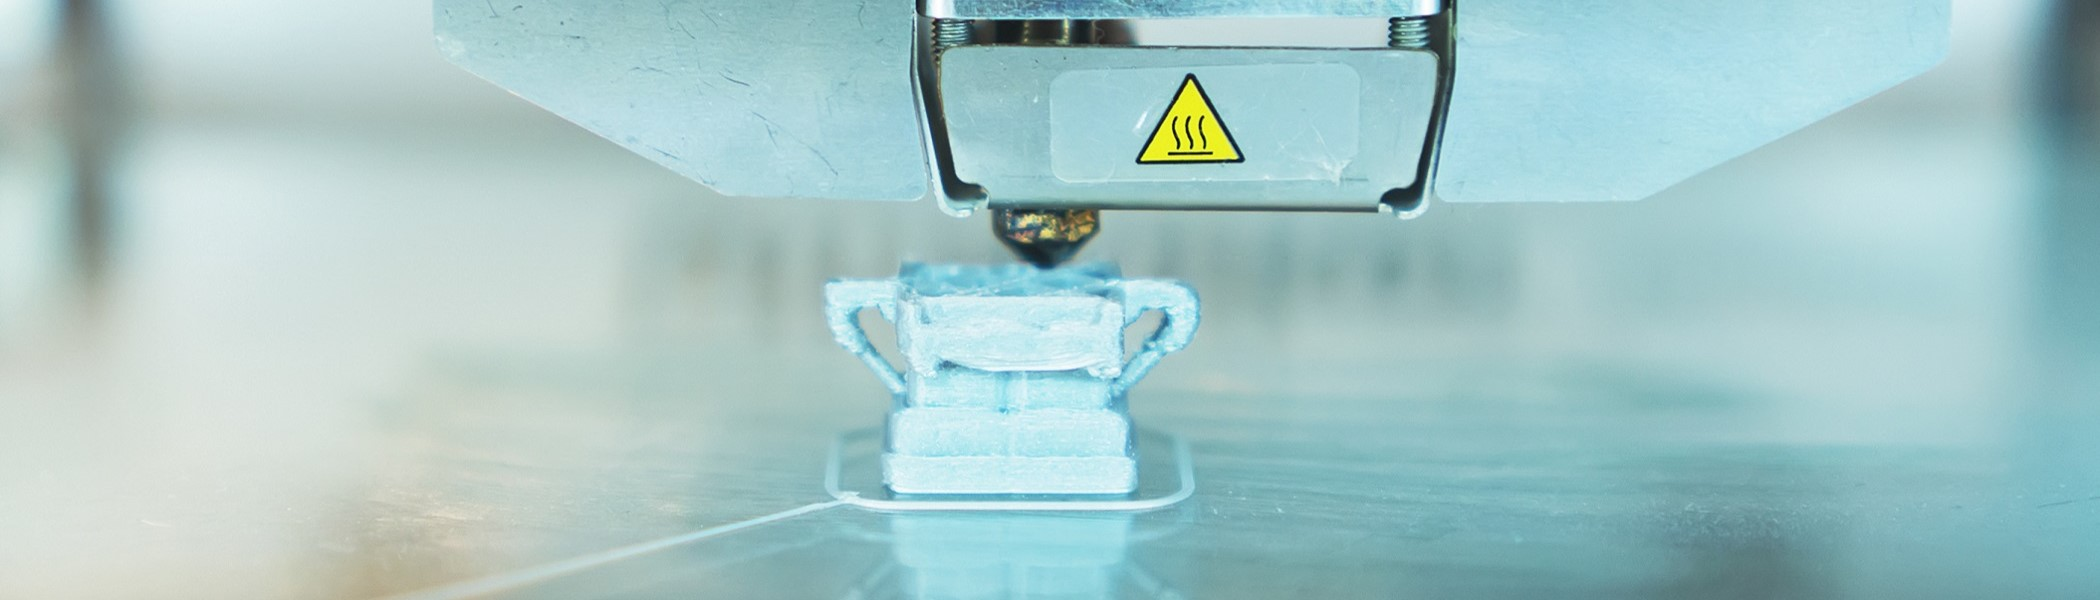 3D PRINTERS COULD PRESENT A RISK TO HUMAN HEALTH.